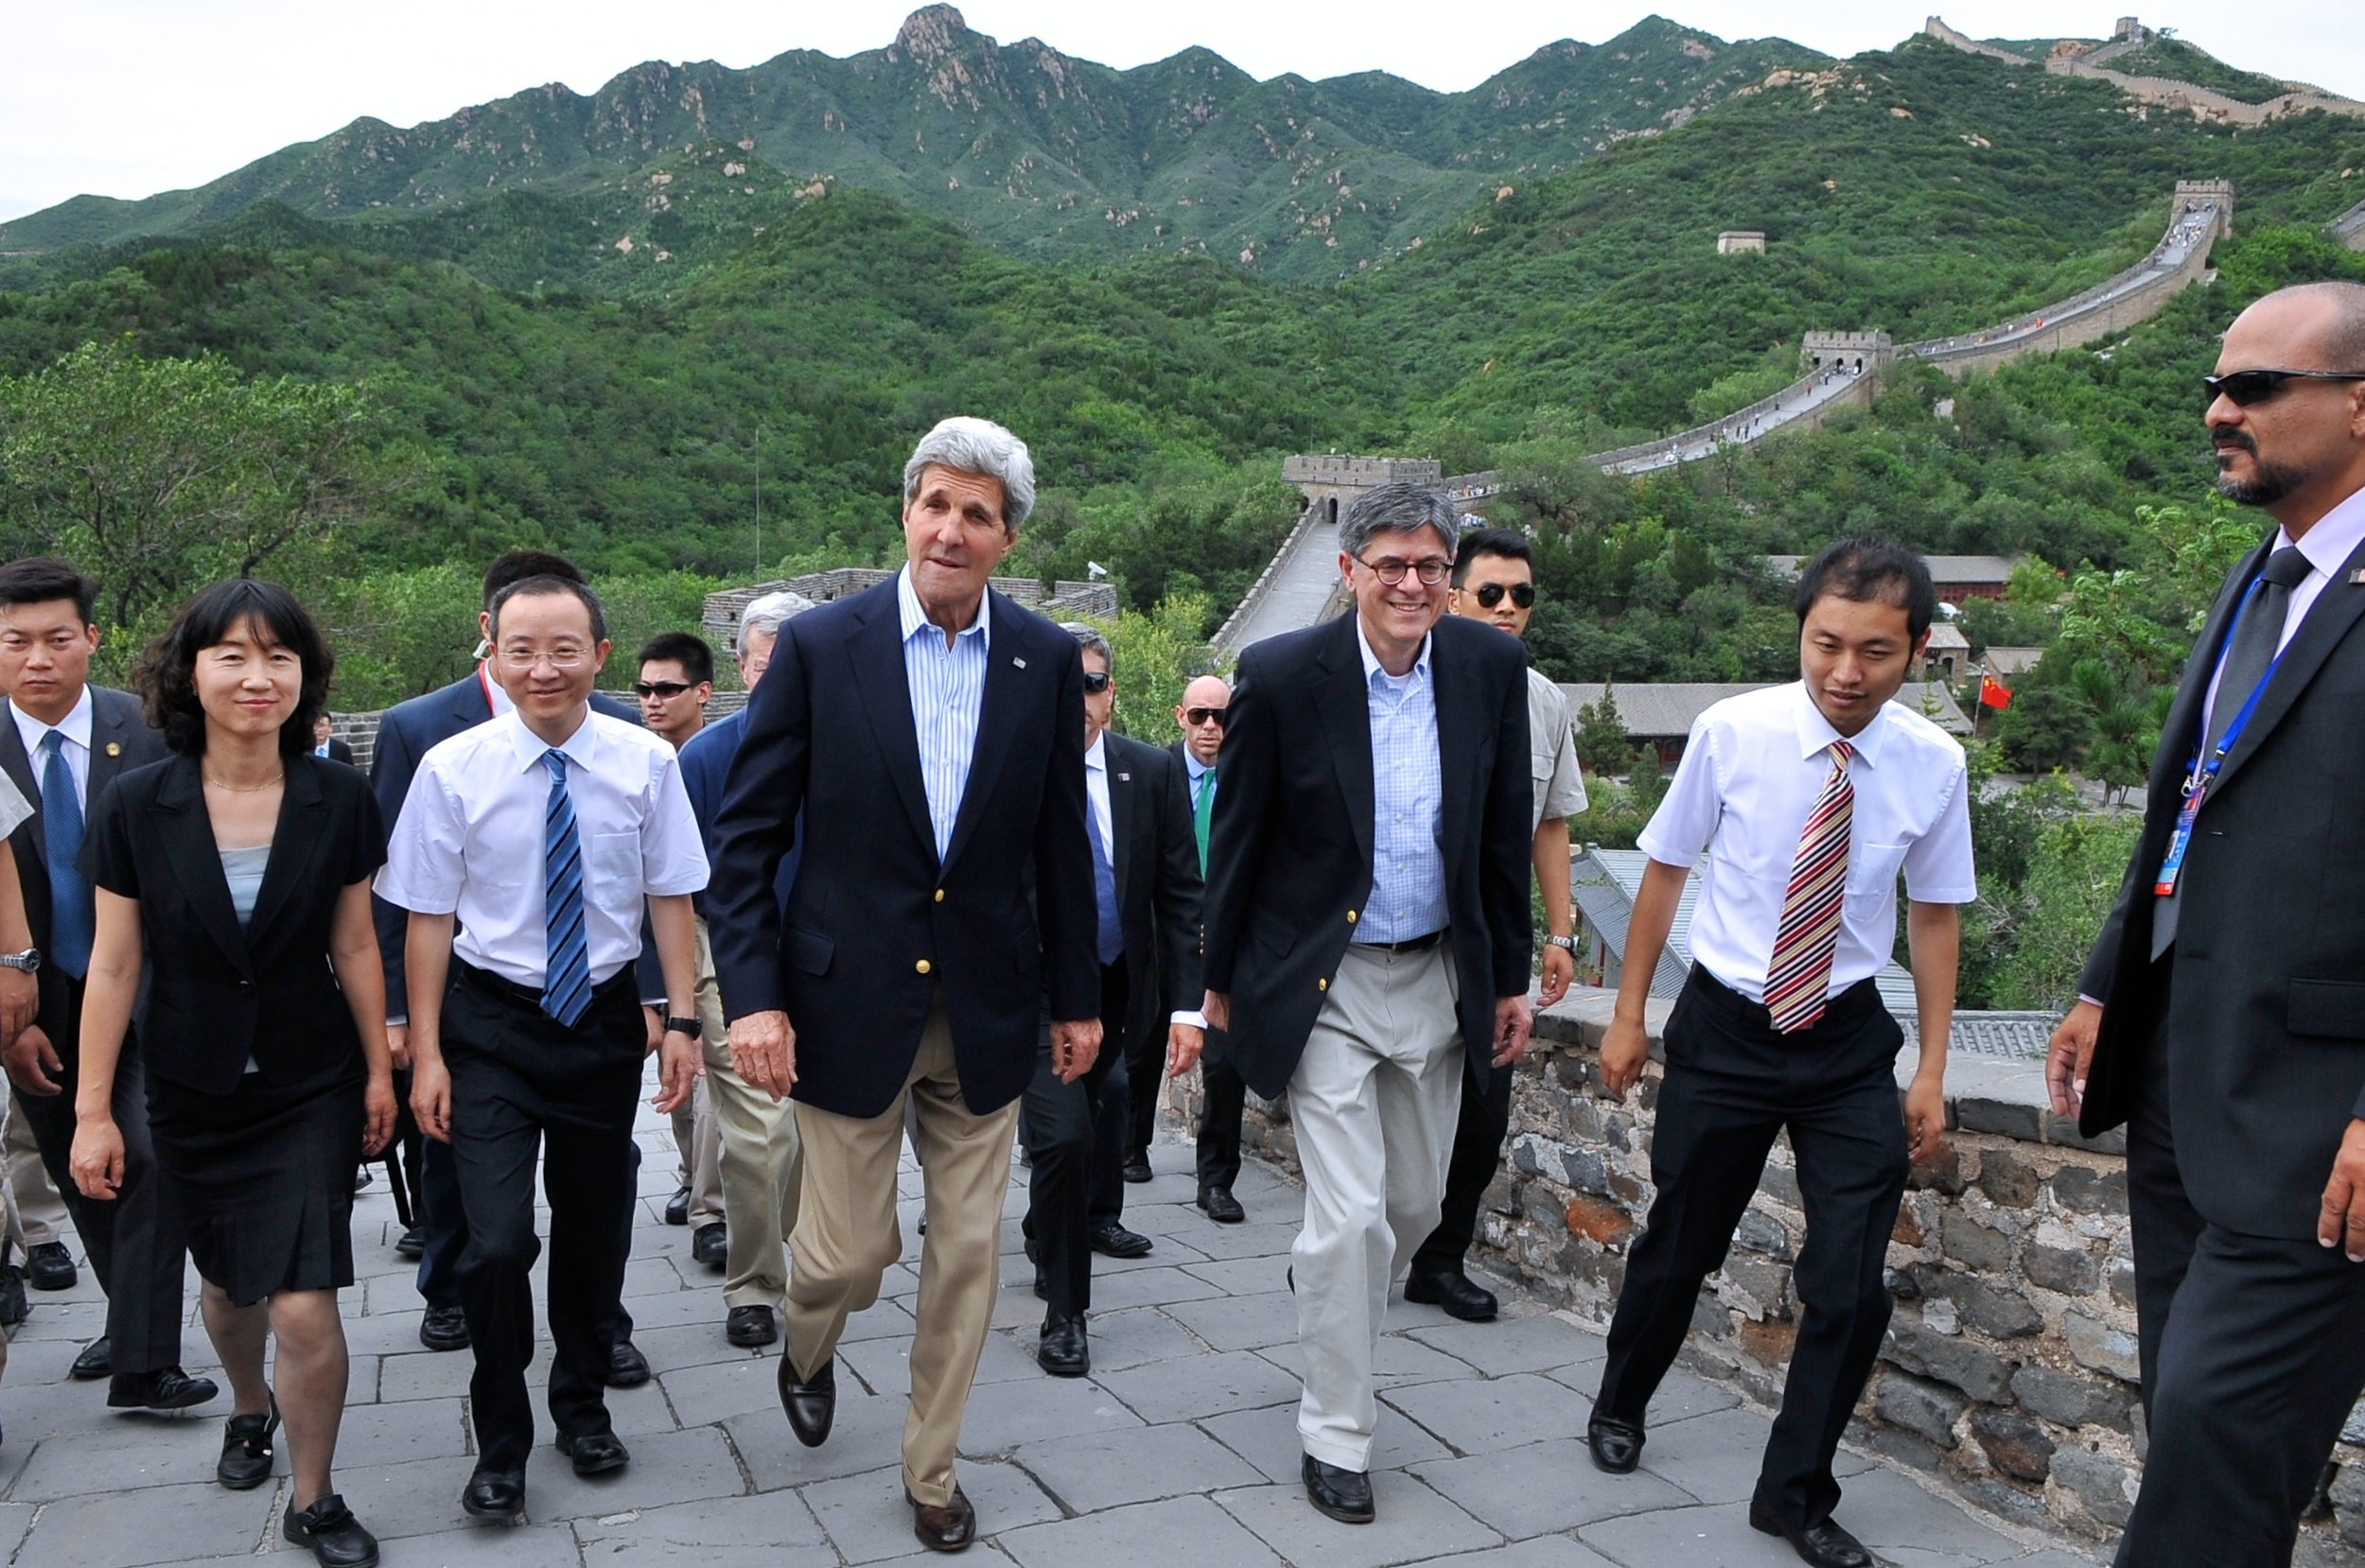 A visit to the Great Wall with U.S. Treasury Secretary Jack Lew during a Strategic and Economic Dialogue.